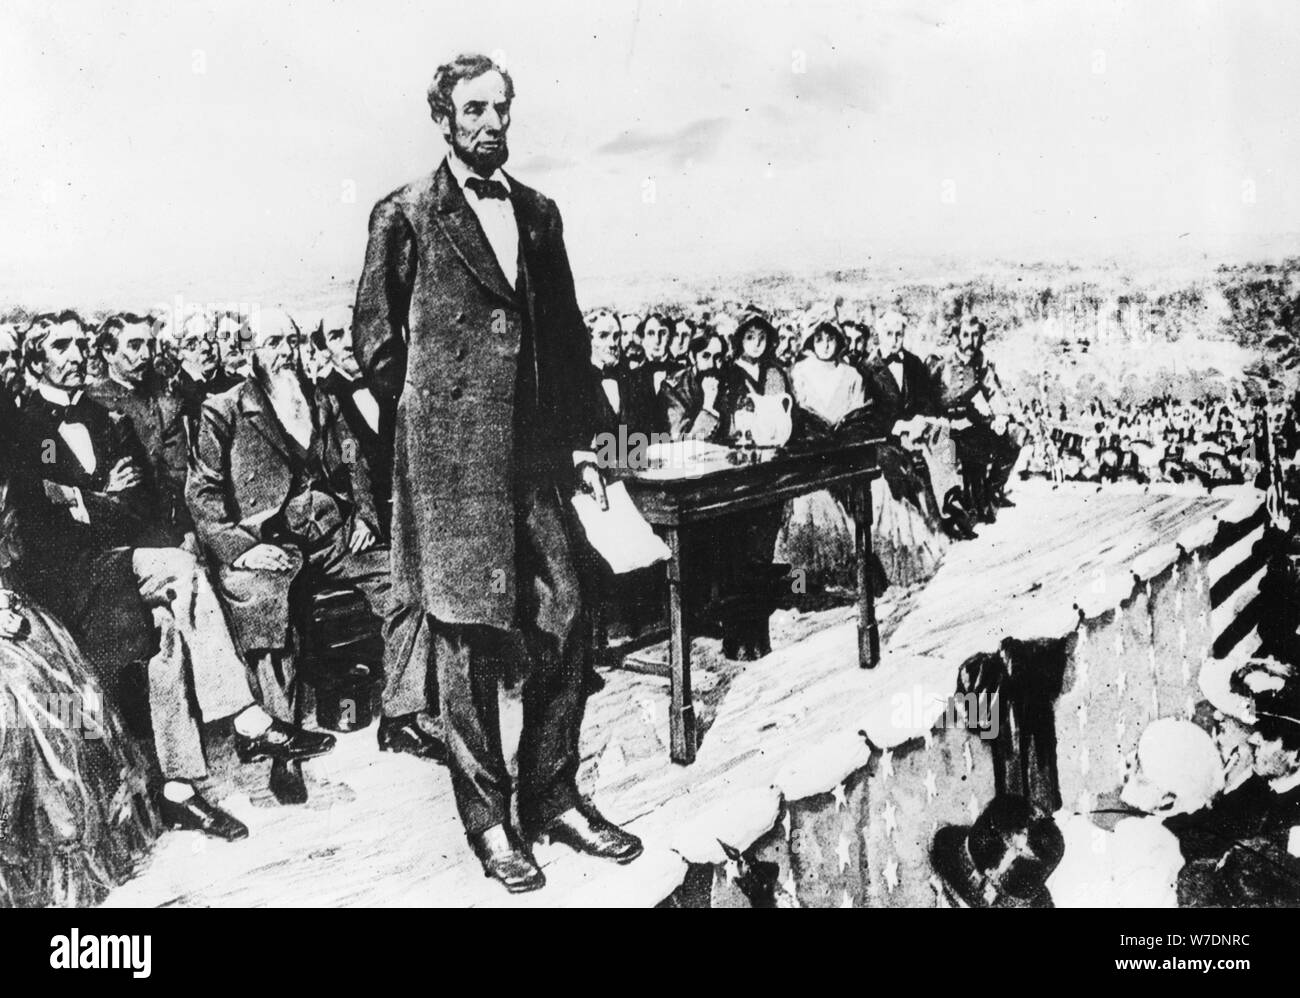 President Abraham Lincoln delivering his Gettysburg Address, 1863. Artist: Unknown Stock Photo